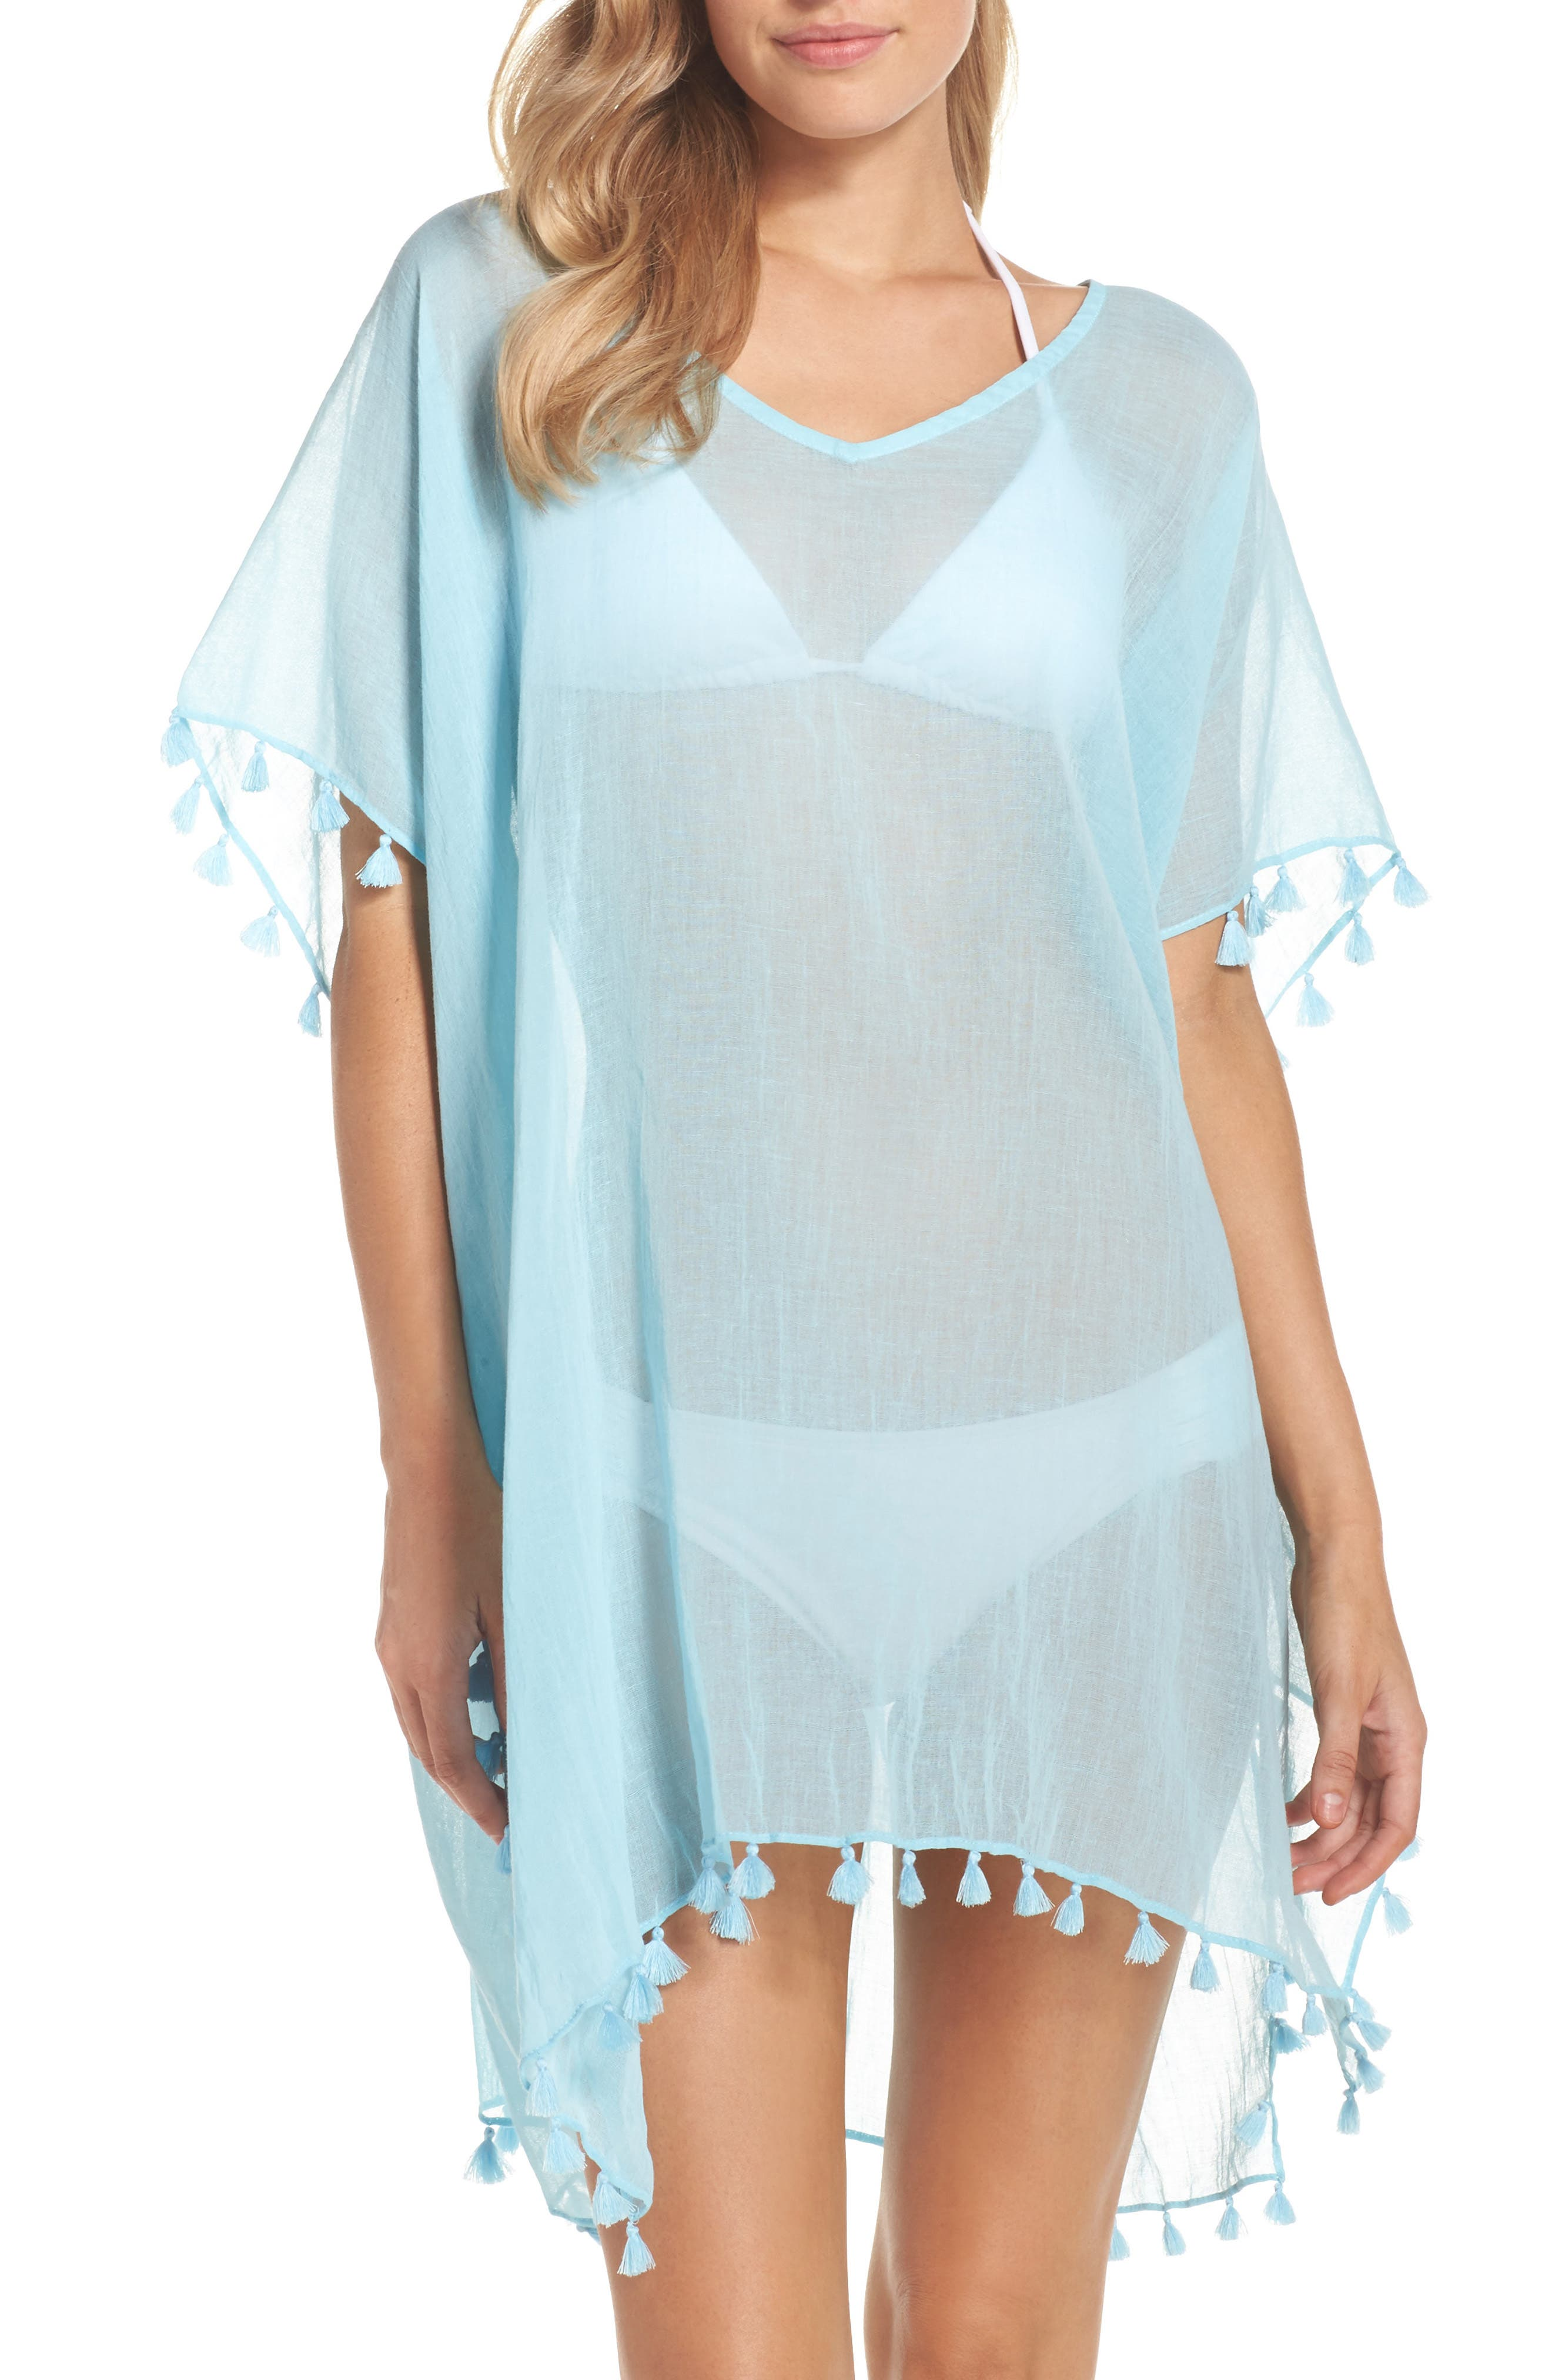 Alternate Image 1 Selected - Seafolly 'Amnesia' Cotton Gauze Cover-Up Caftan